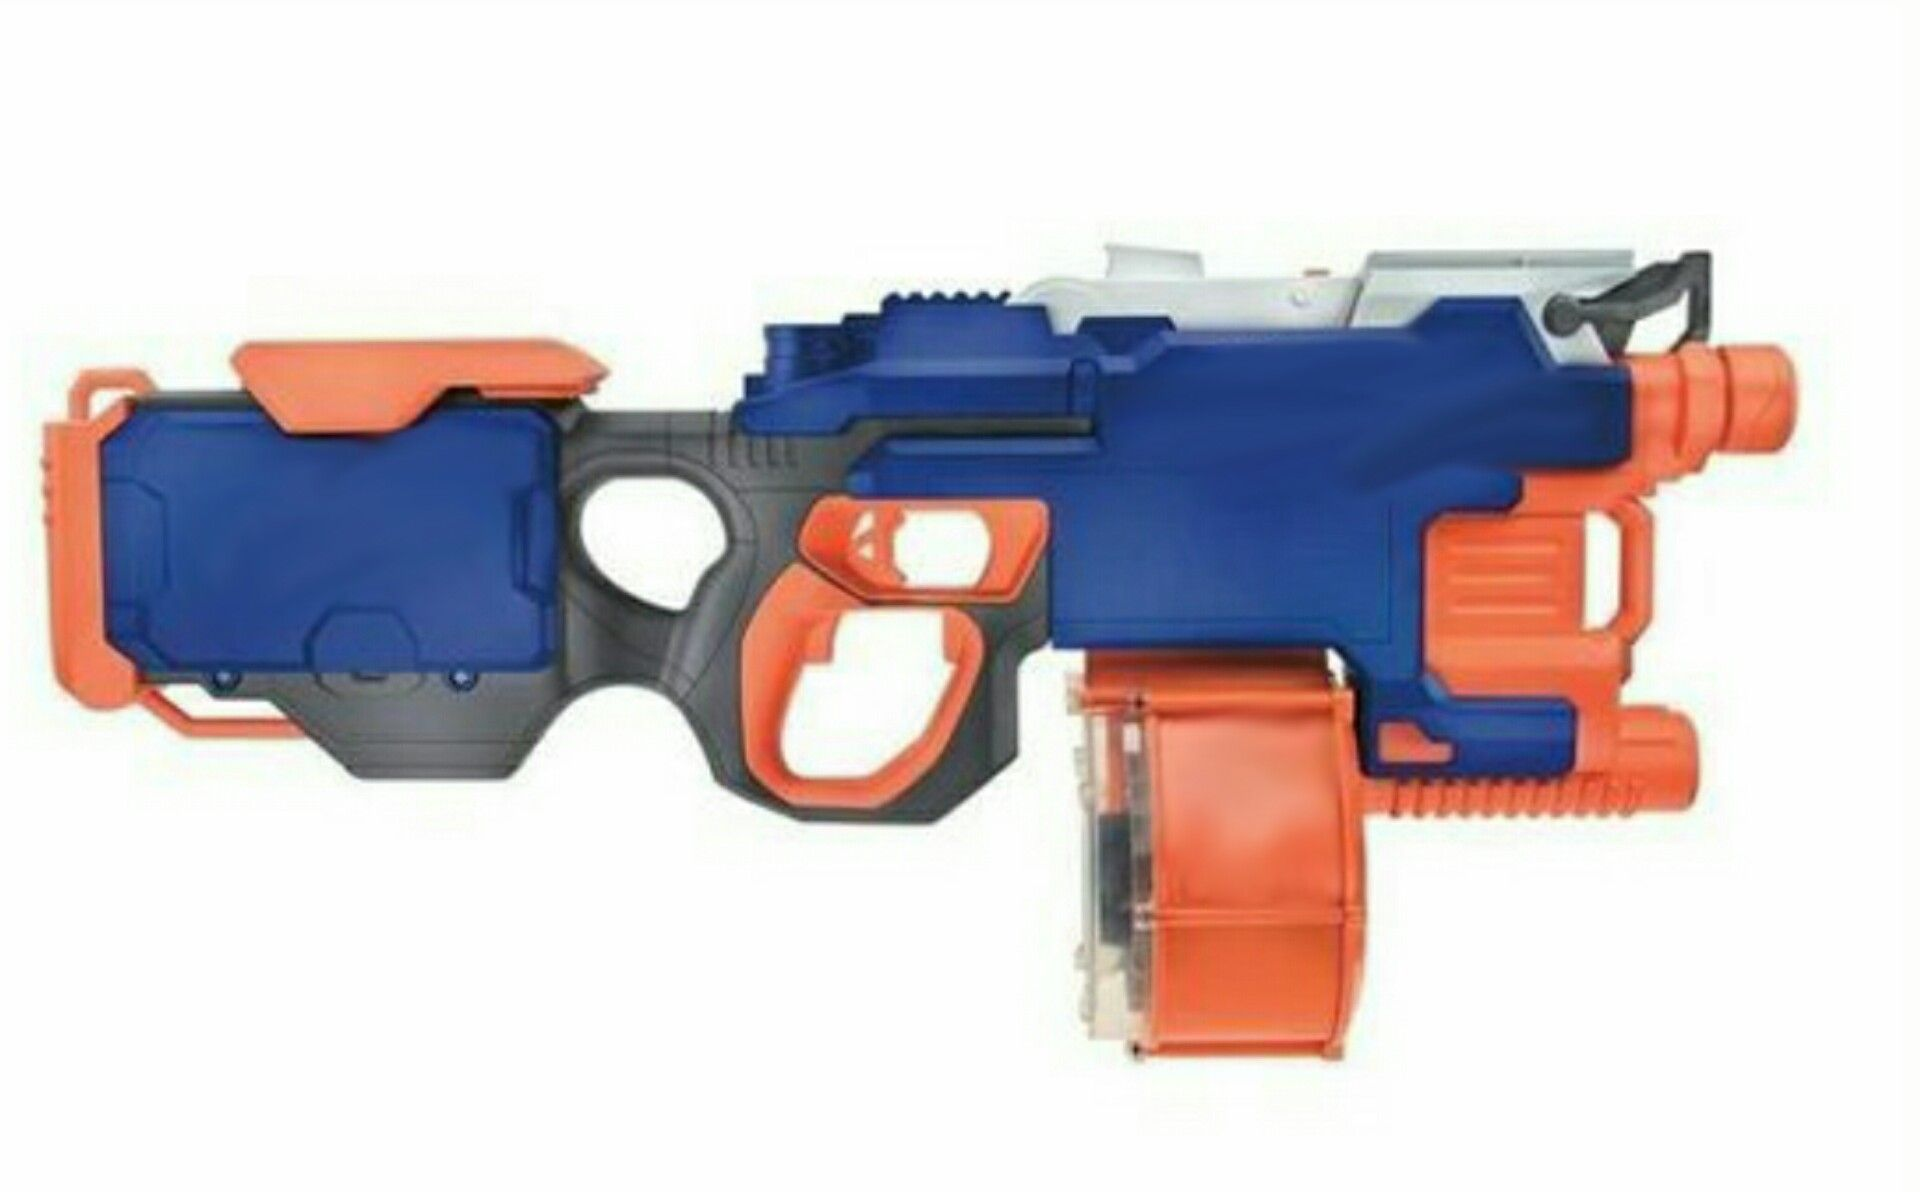 Newest Nerf Guns, Transformers, Evans, Weapons, Boss, Weapons Guns, Weapon,  Guns, Gun